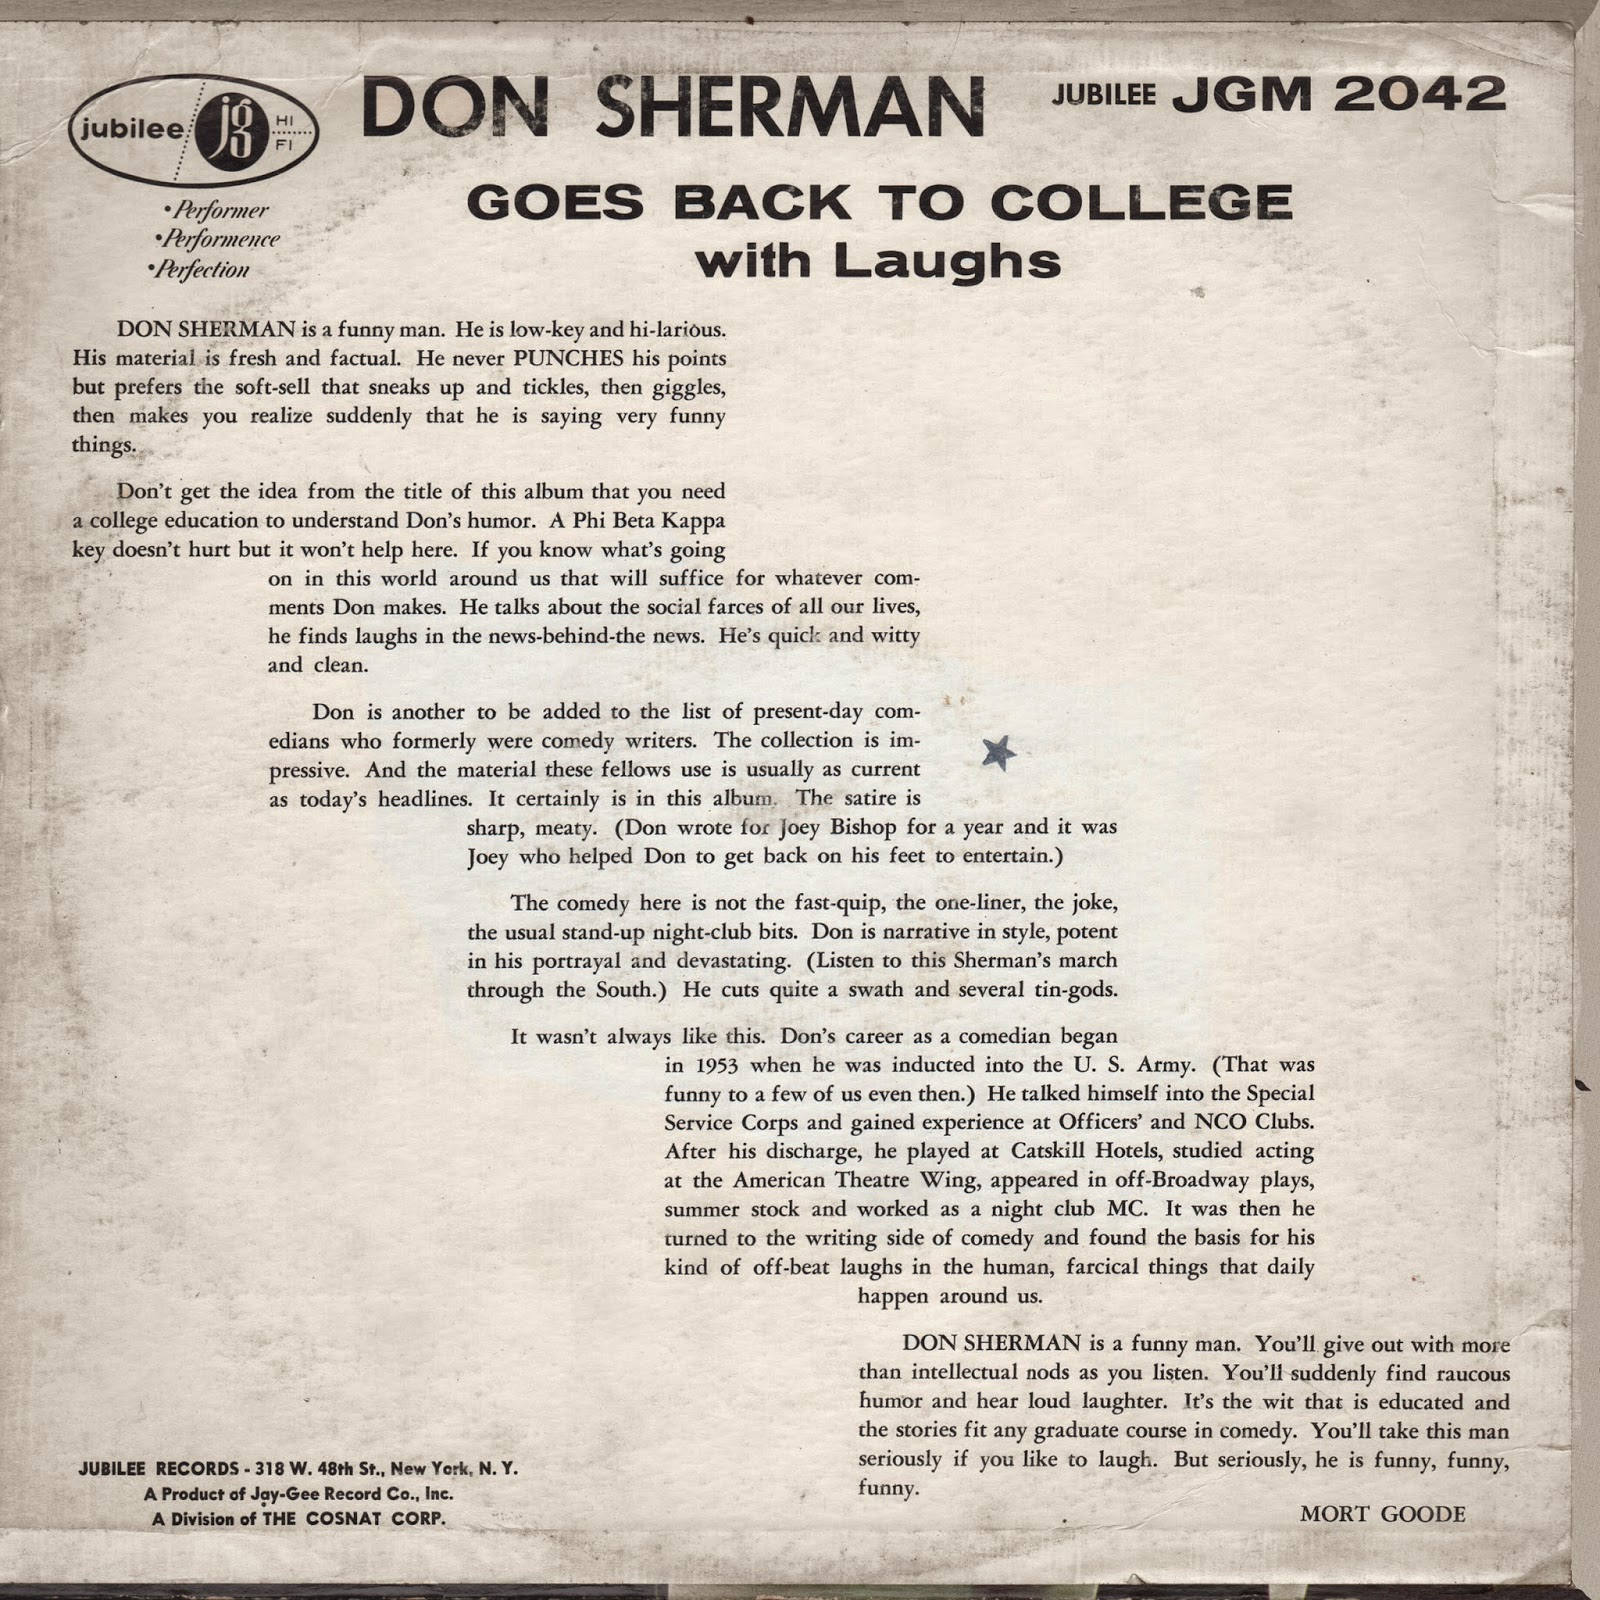 Vintage Stand-up Comedy: Don Sherman - Don Sherman Goes Back To